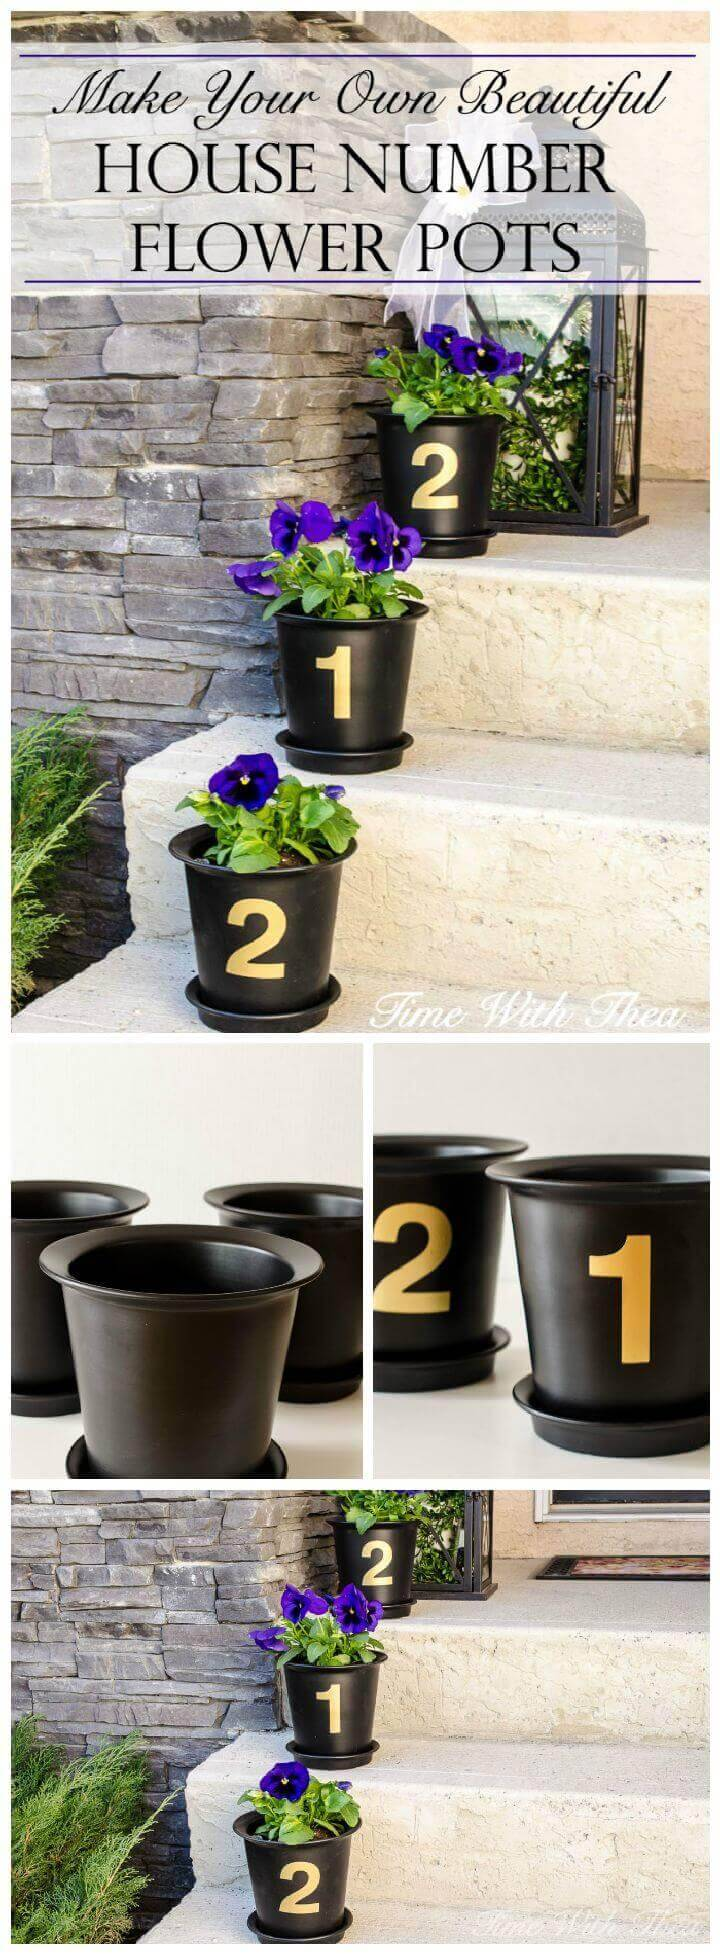 Beautiful House Number Flower Pots